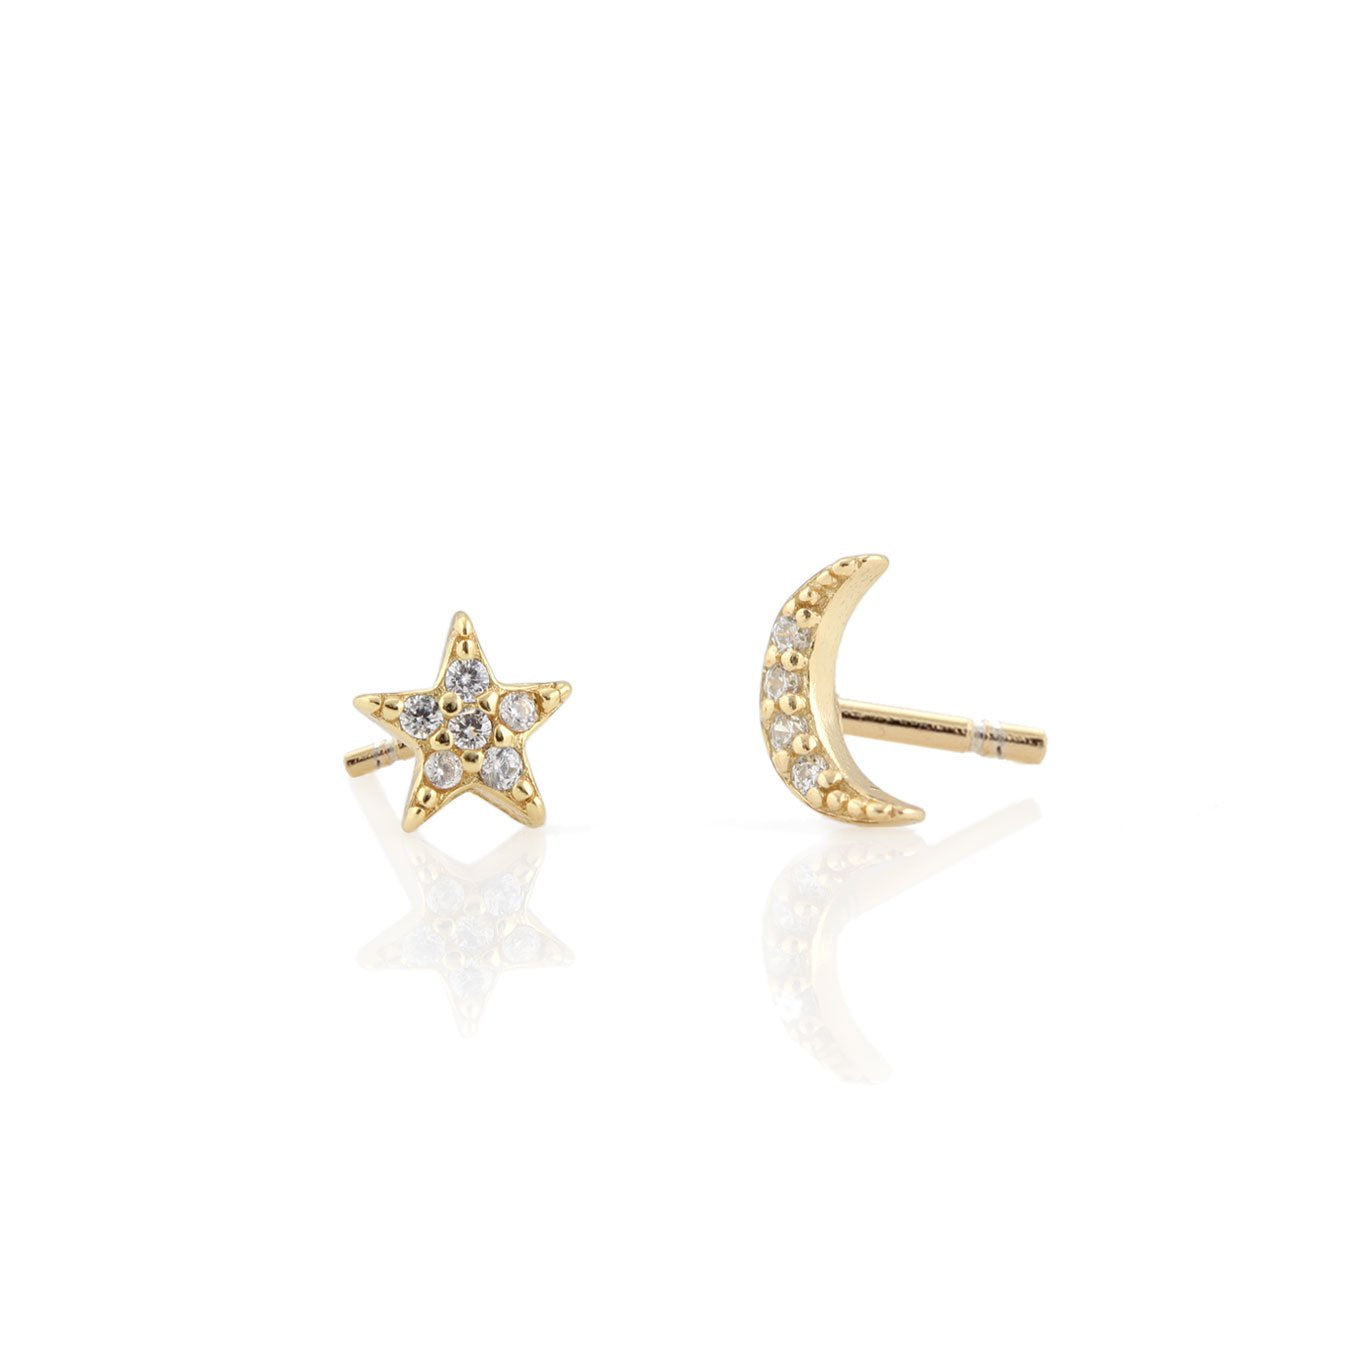 KRIS NATIONS - STAR AND MOON PAVE STUD EARRINGS IN 18K GOLD